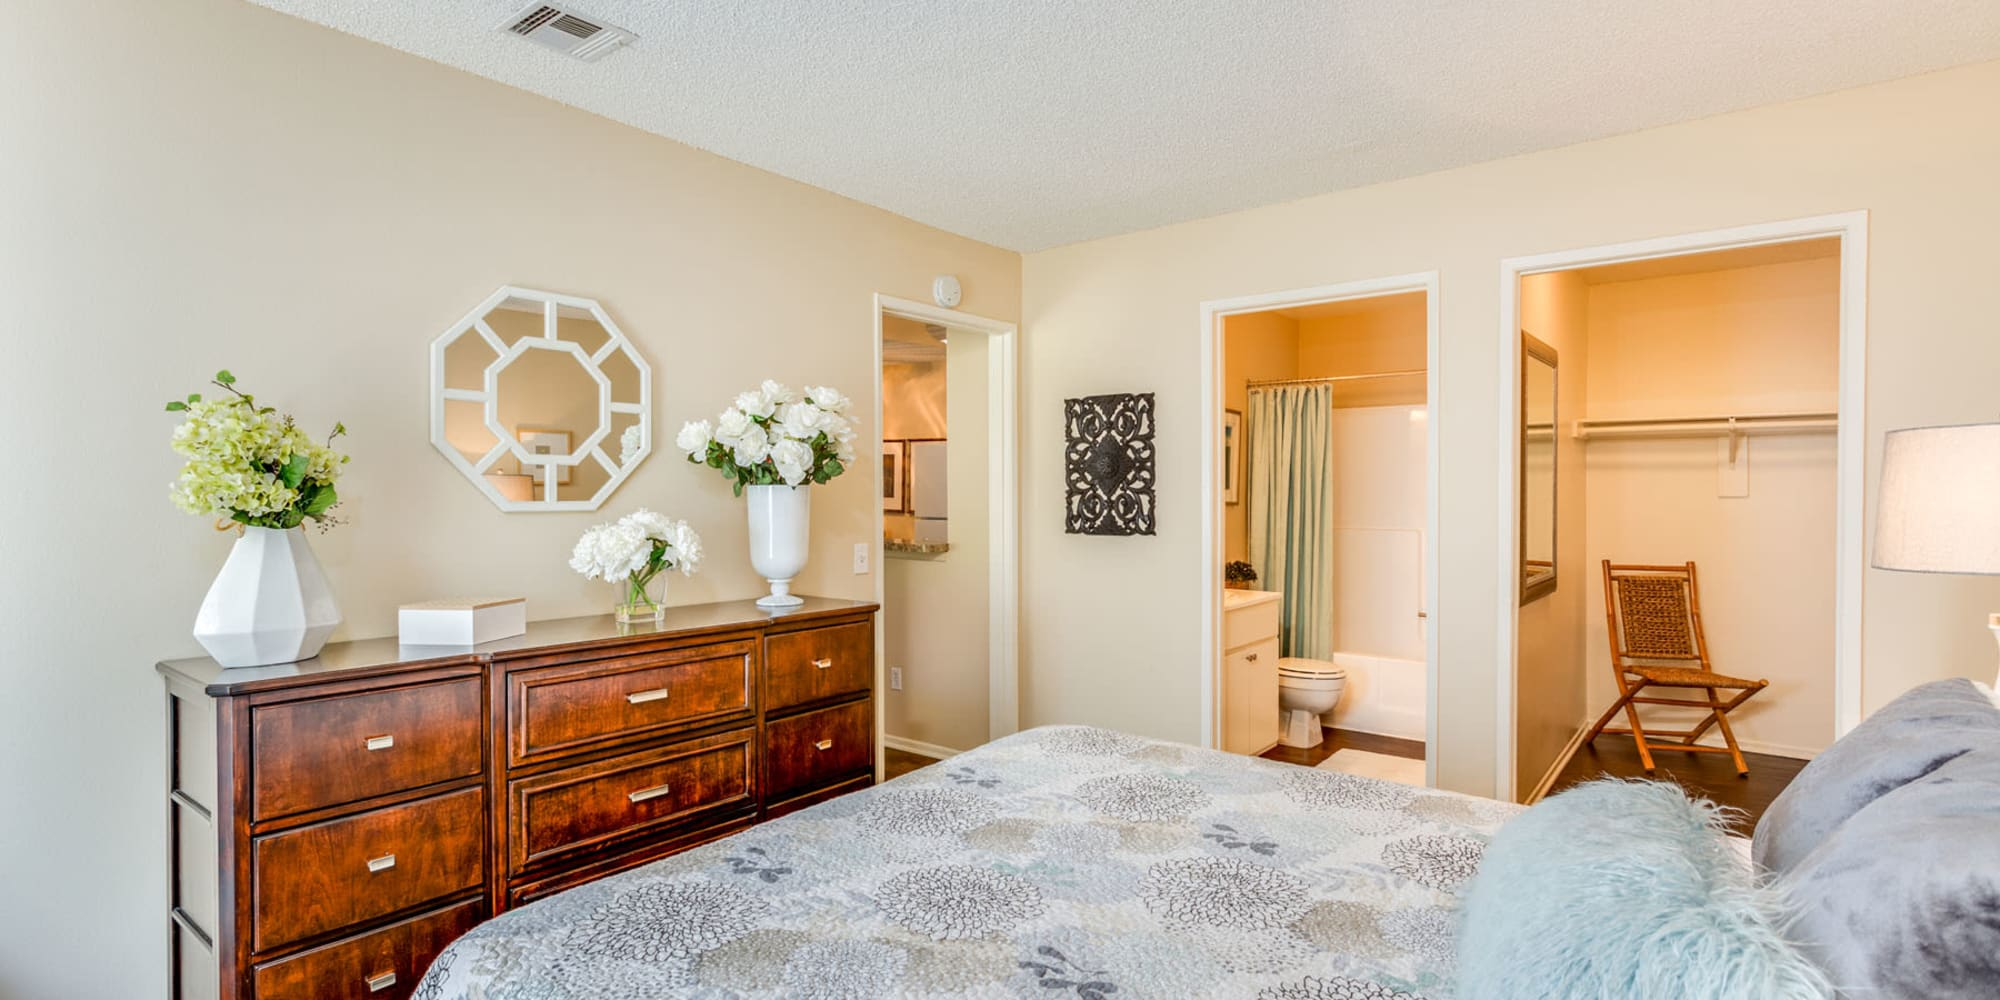 Spacious primary bedroom with an en suite bathroom and walk-in closet at Mountain Vista in Victorville, California